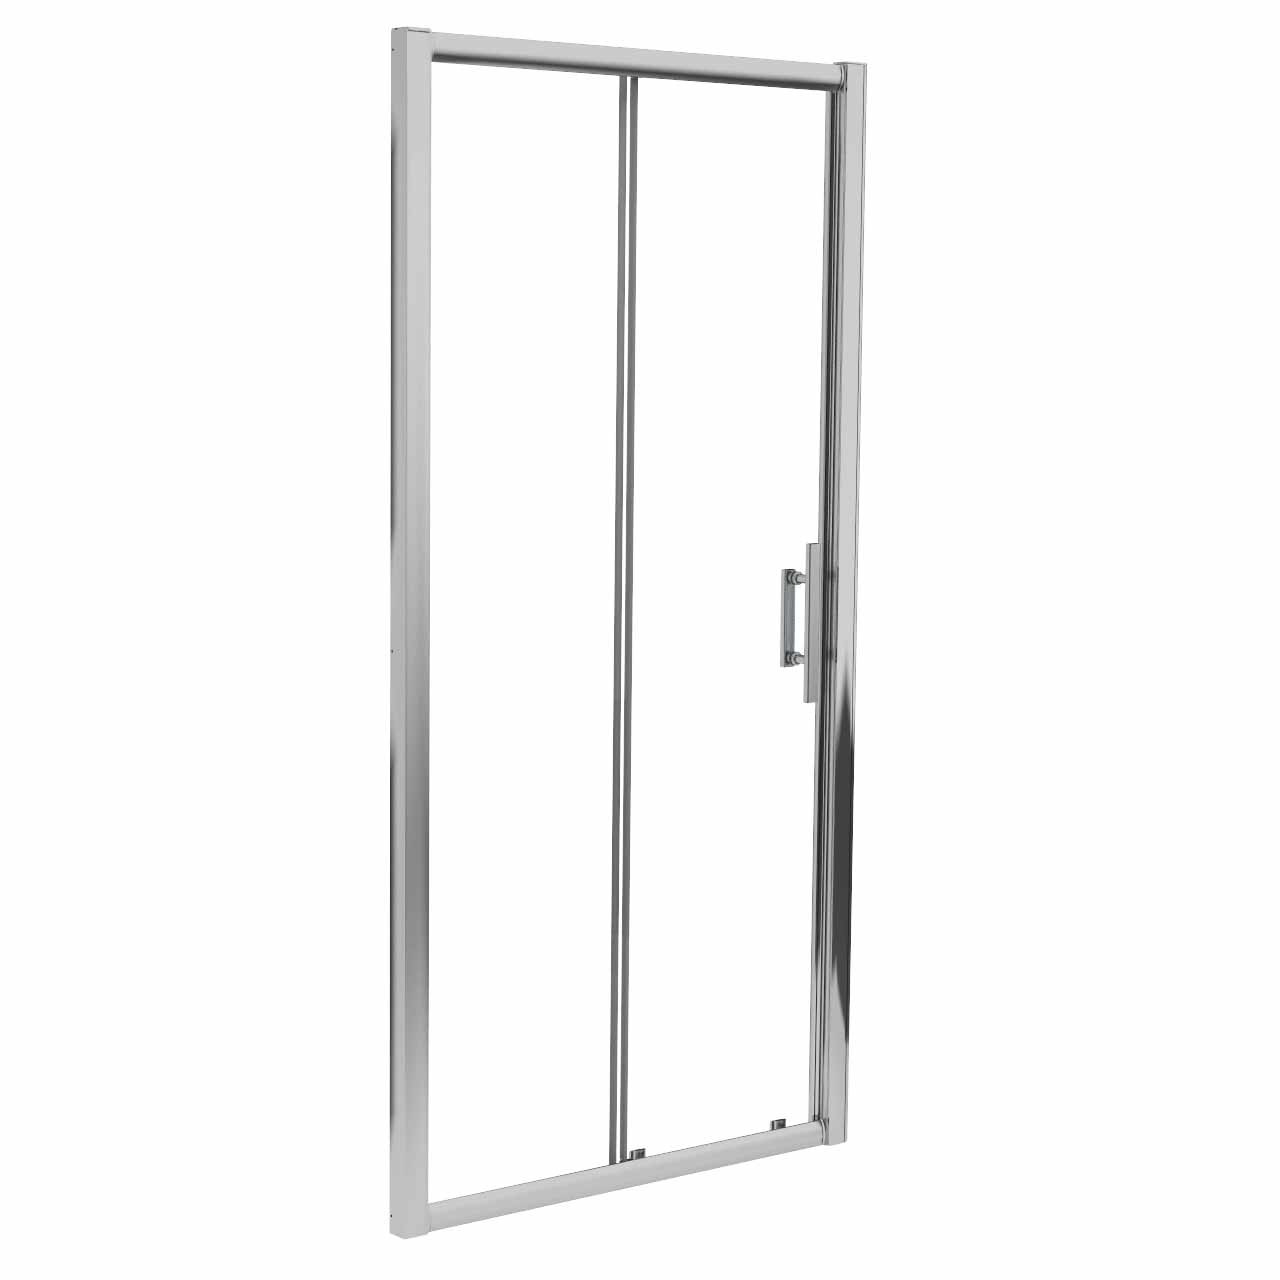 Series 8 Plus 1000 x 900 Sliding Door Enclosure